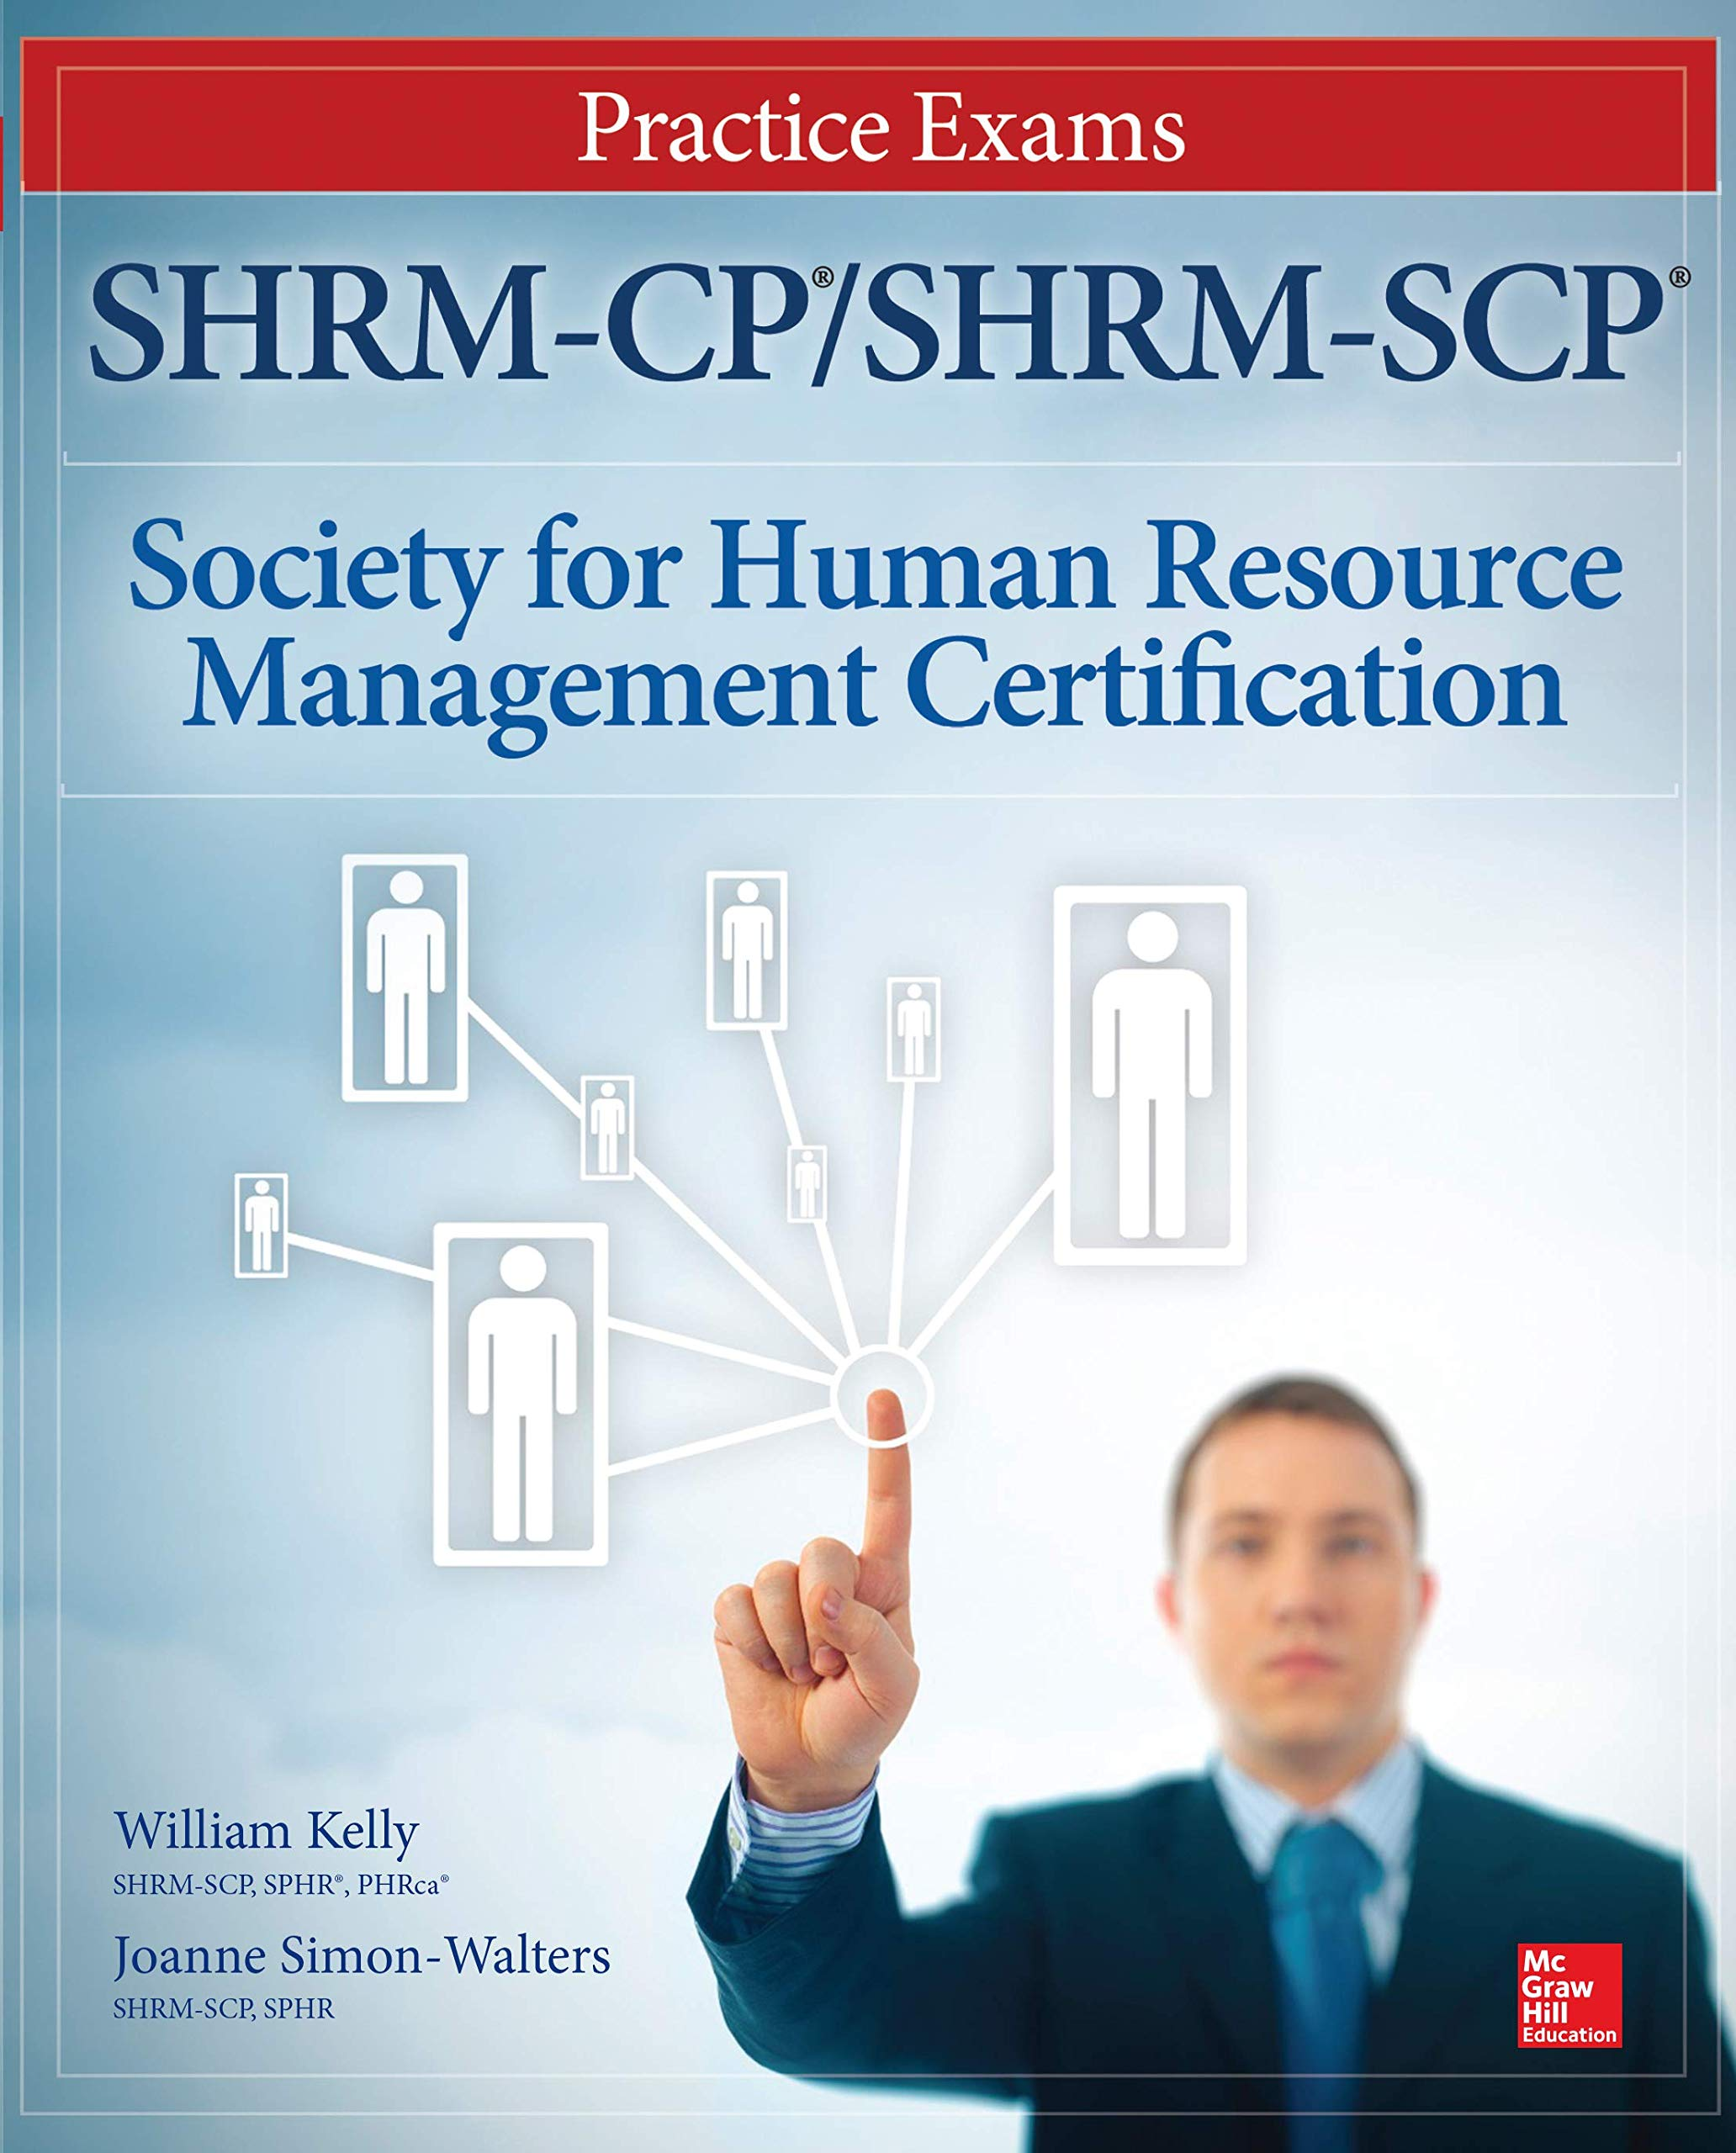 Buy Shrm Cpshrm Scp Certification Practice Exams All In One Book